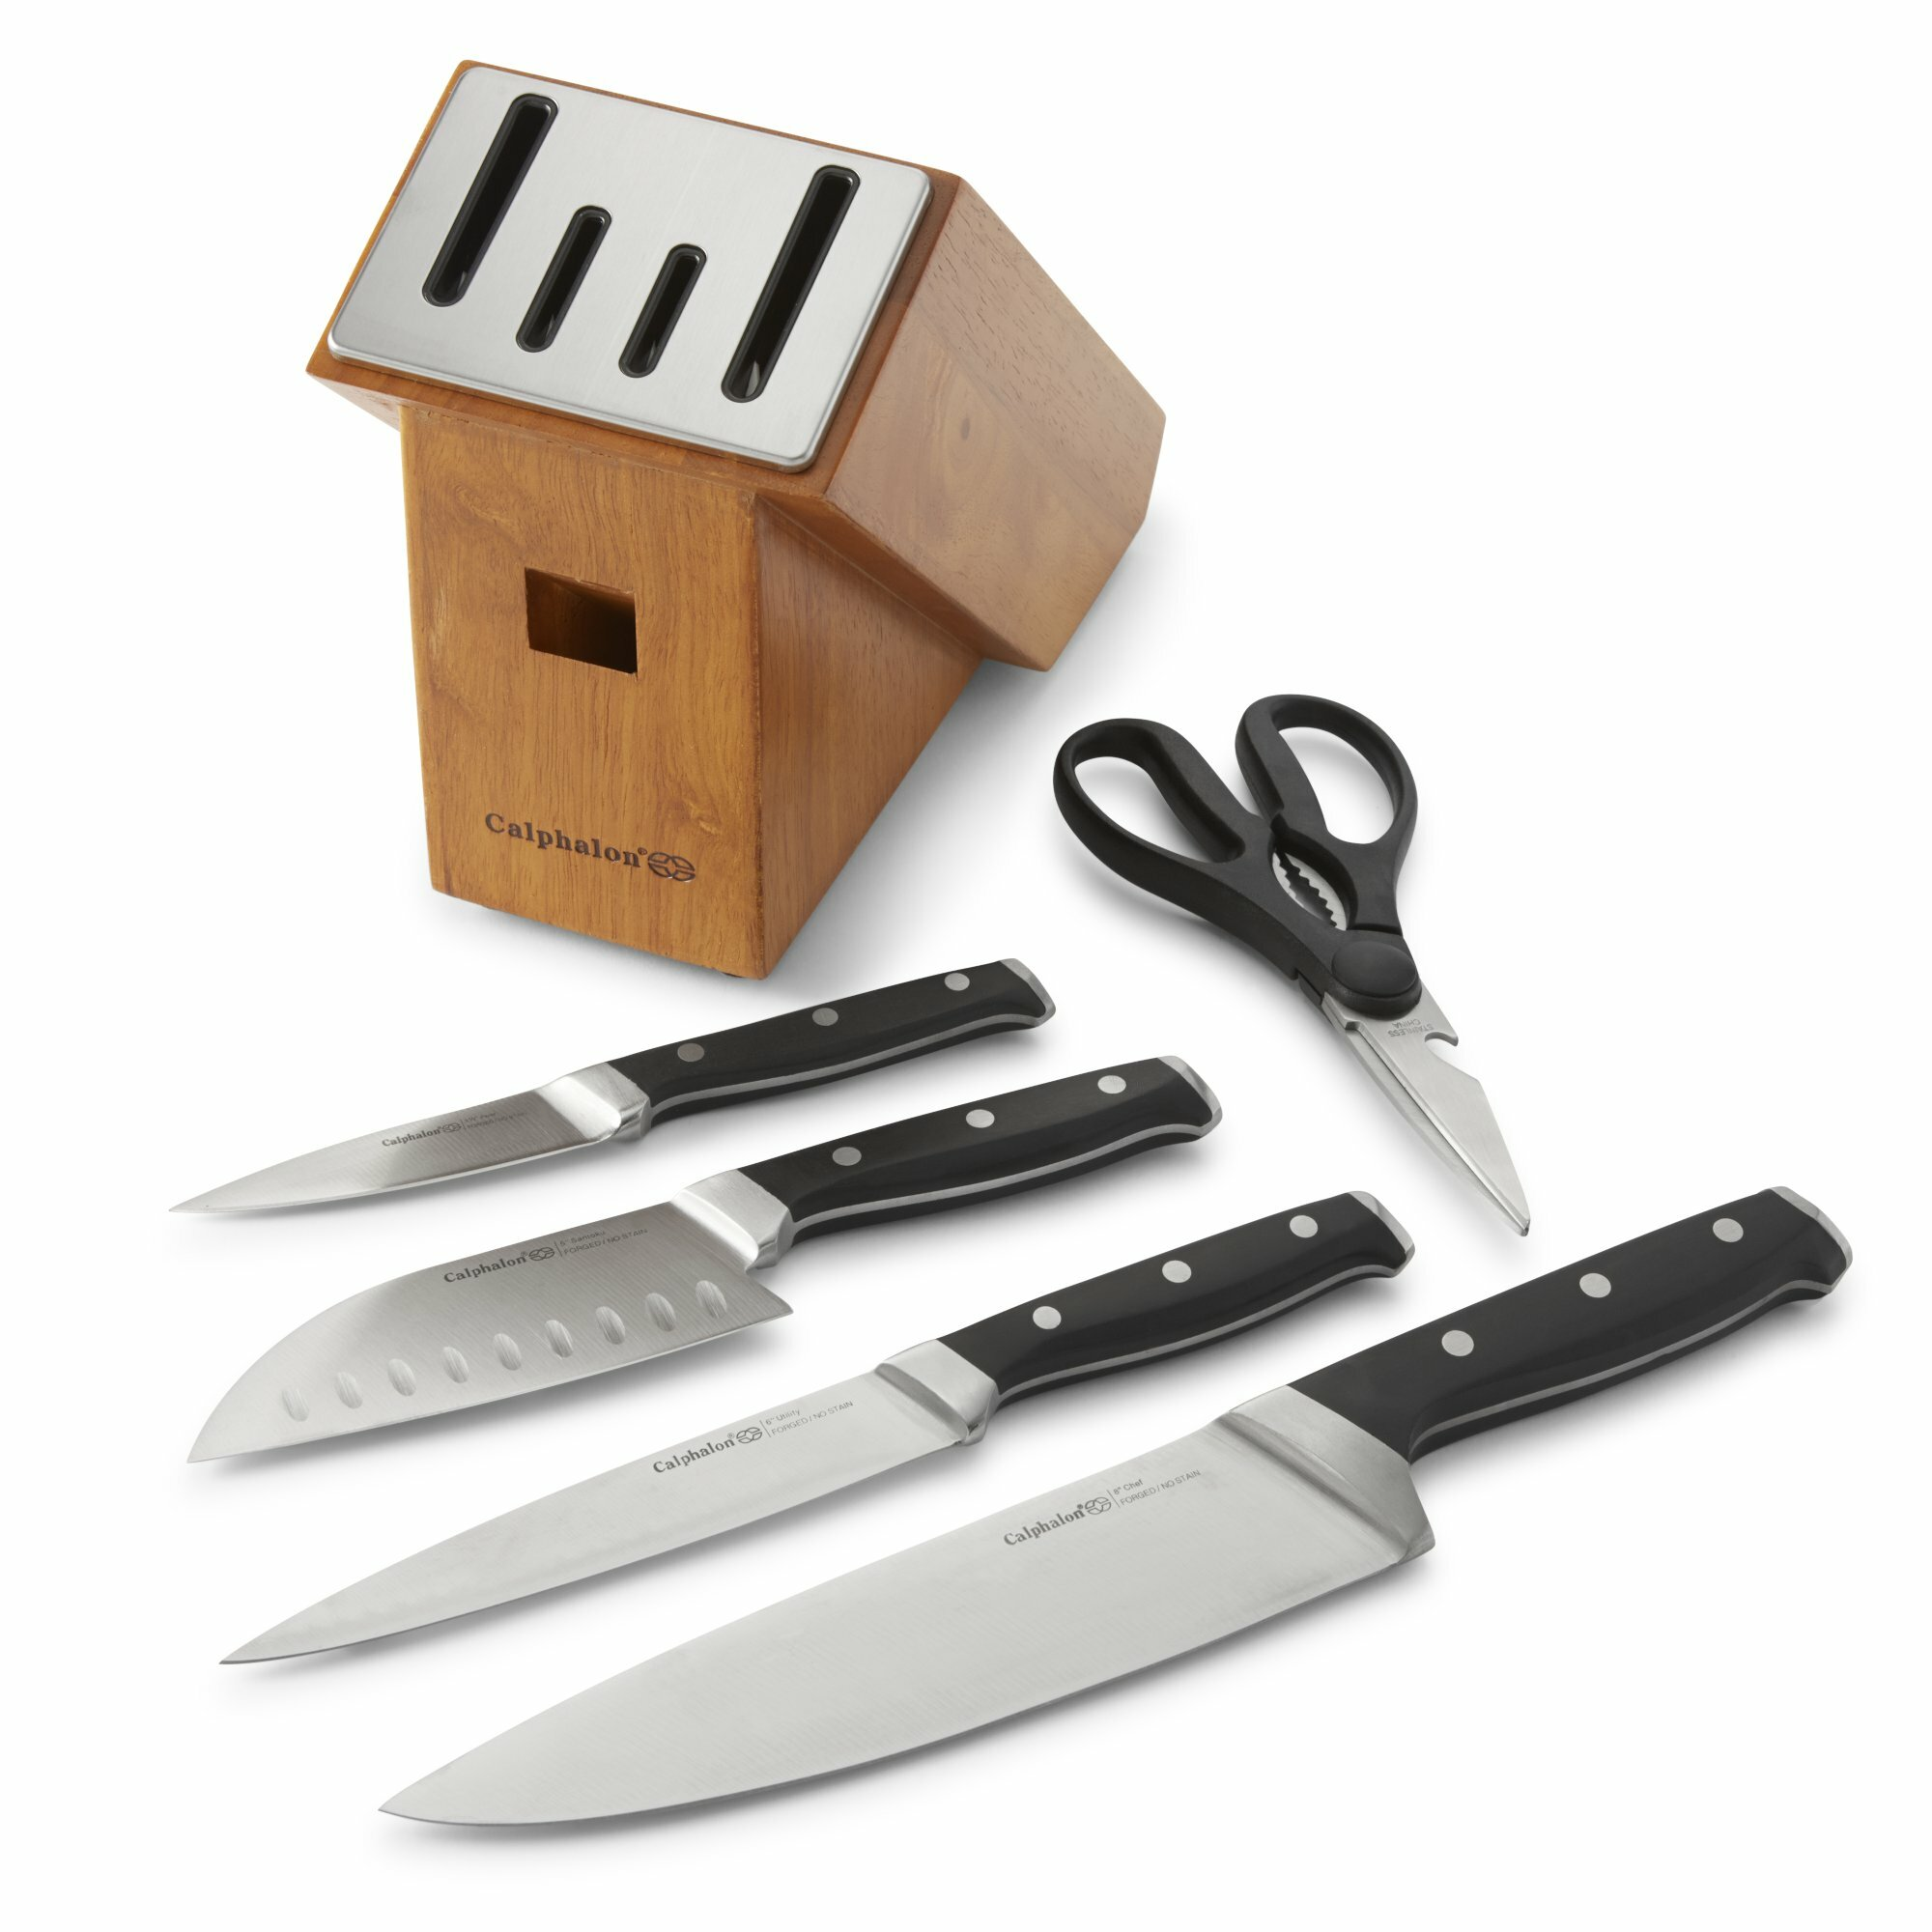 Calphalon Classic SharpIN 6 Piece Self-Sharpening Knife Set ...